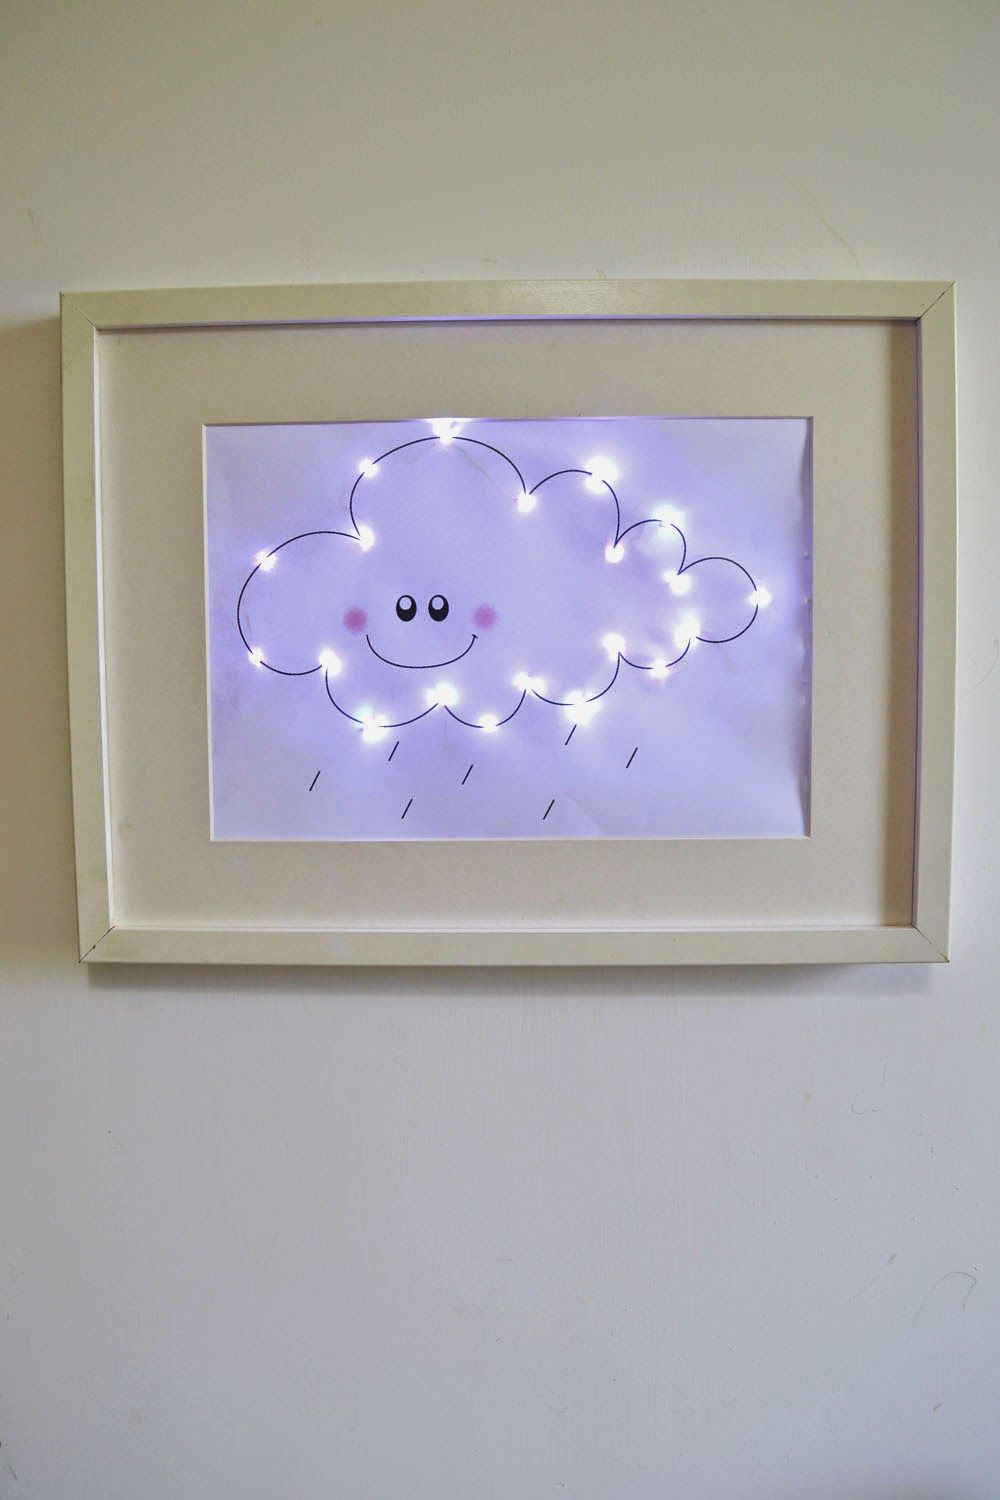 Diy cloud light for the nigth mommo design interieur - Cavalletto ikea bambini ...